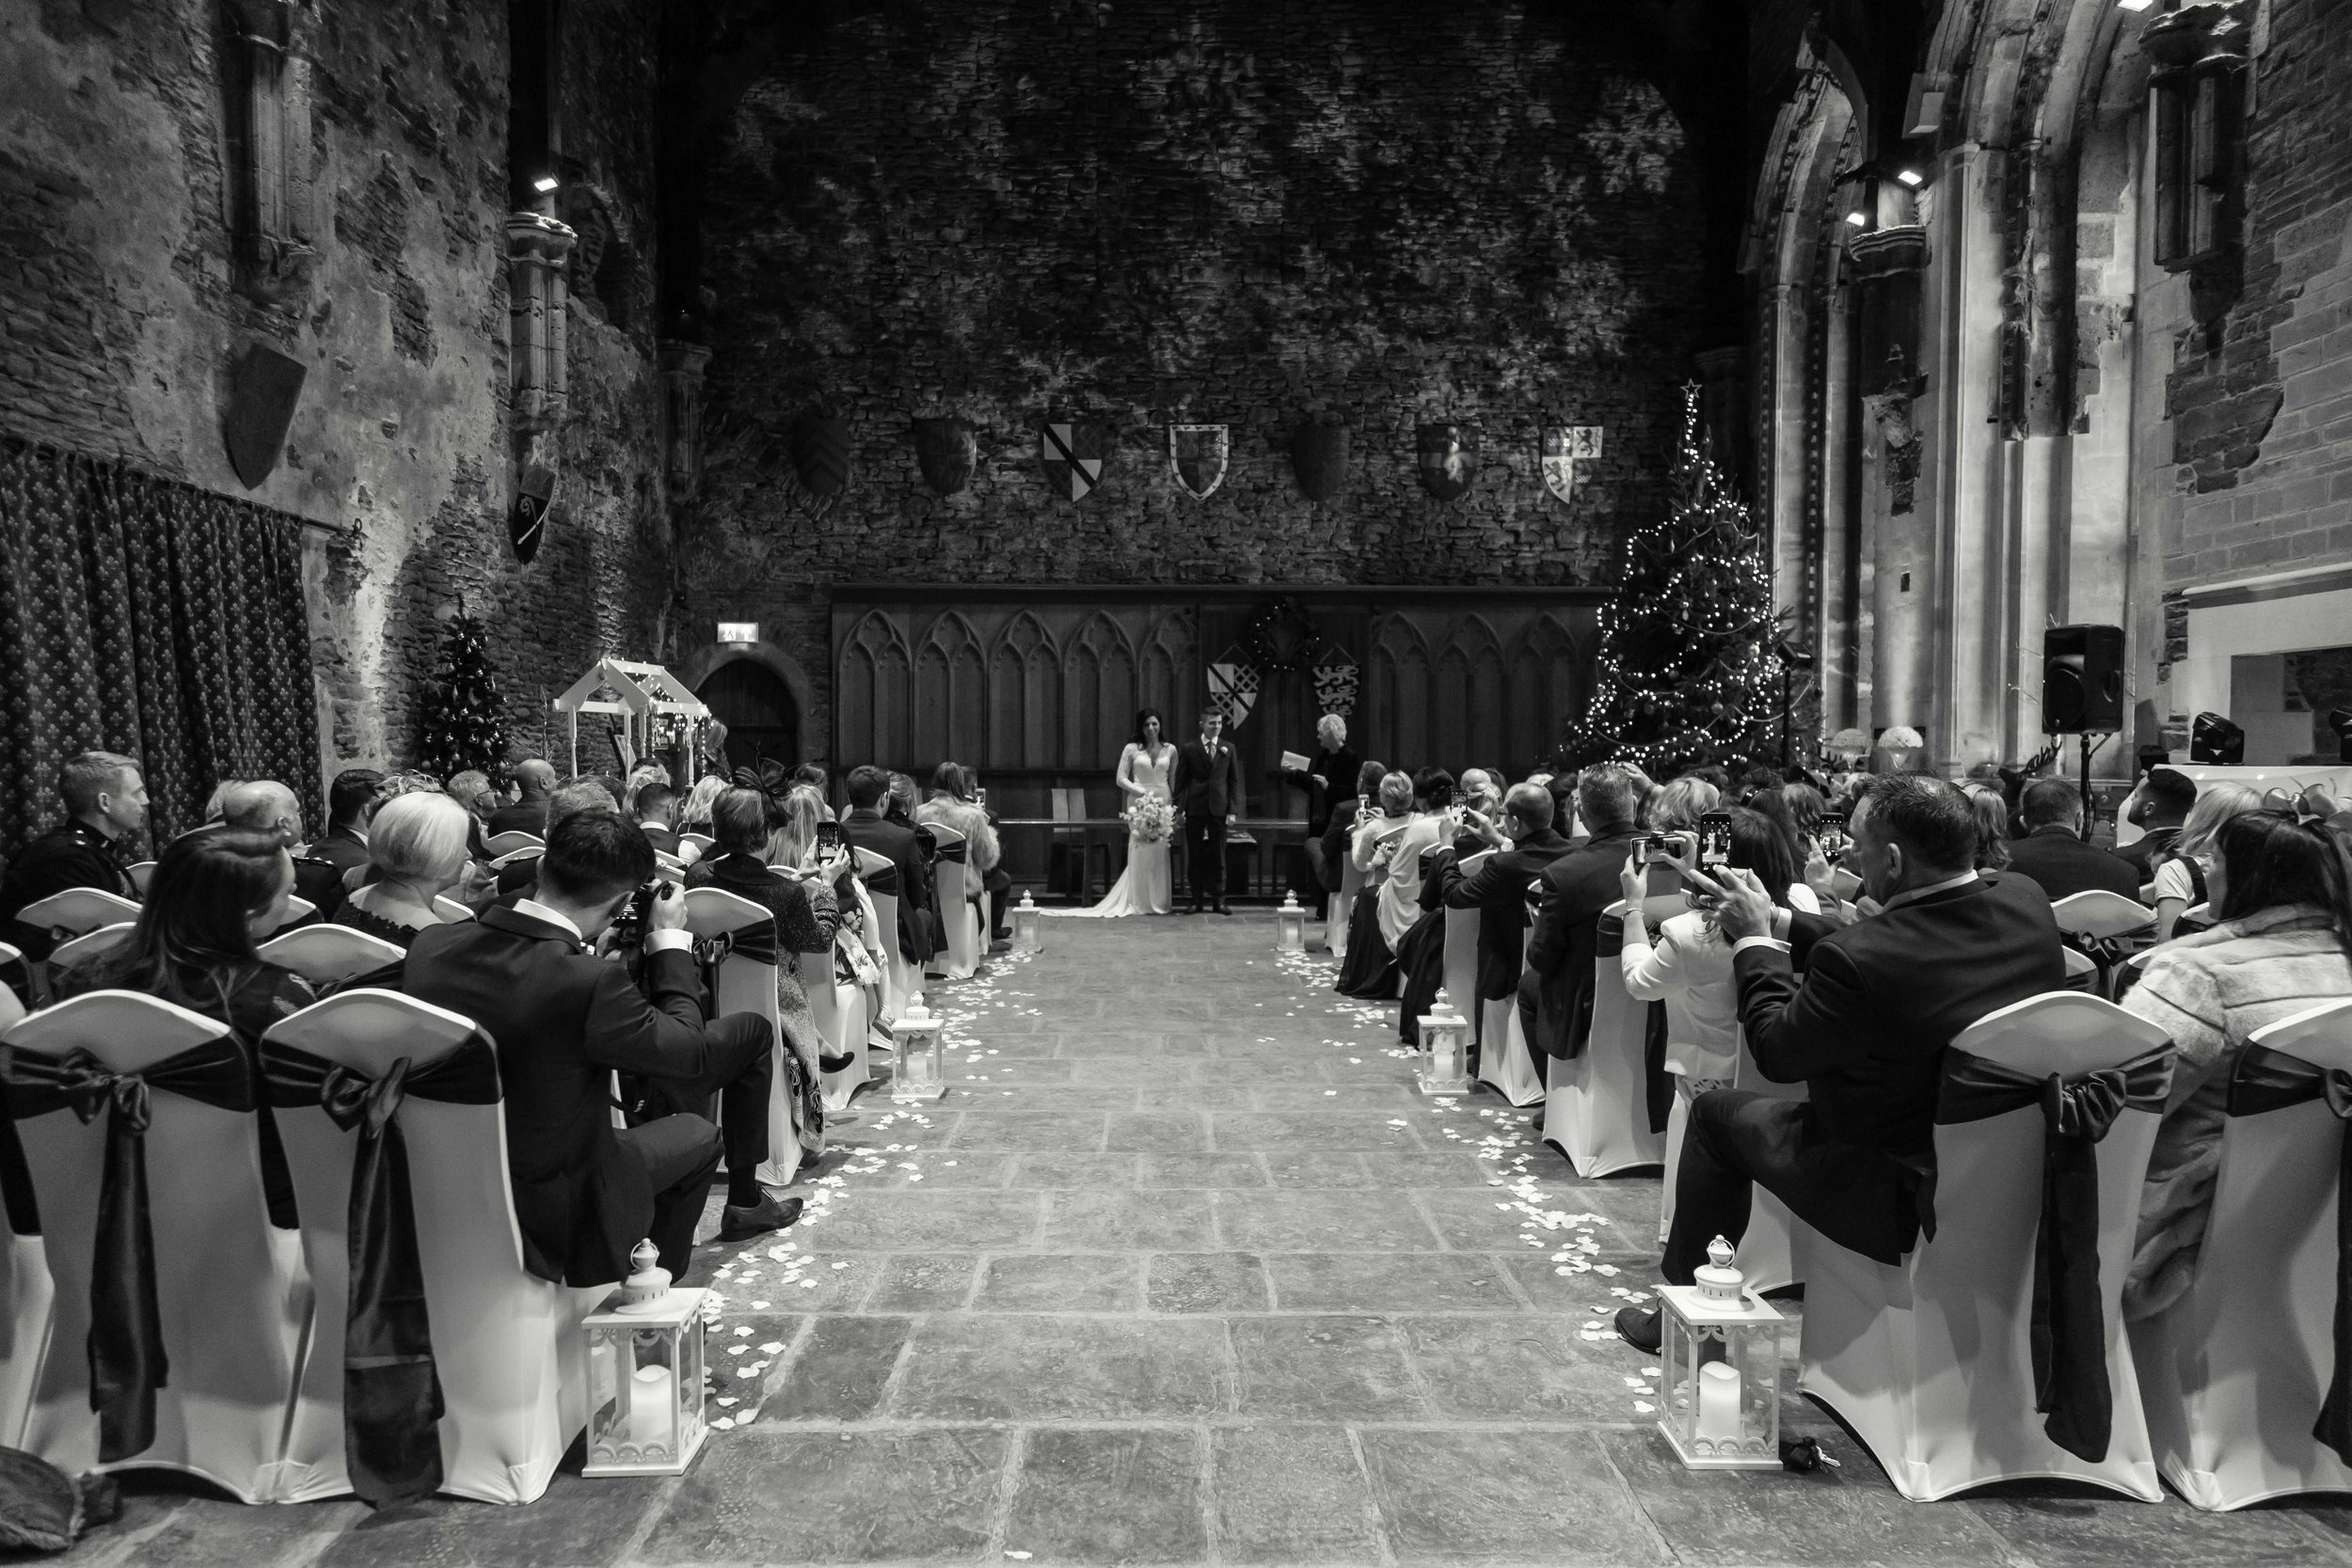 The wedding party at the Great Hall, Caerphilly Castle